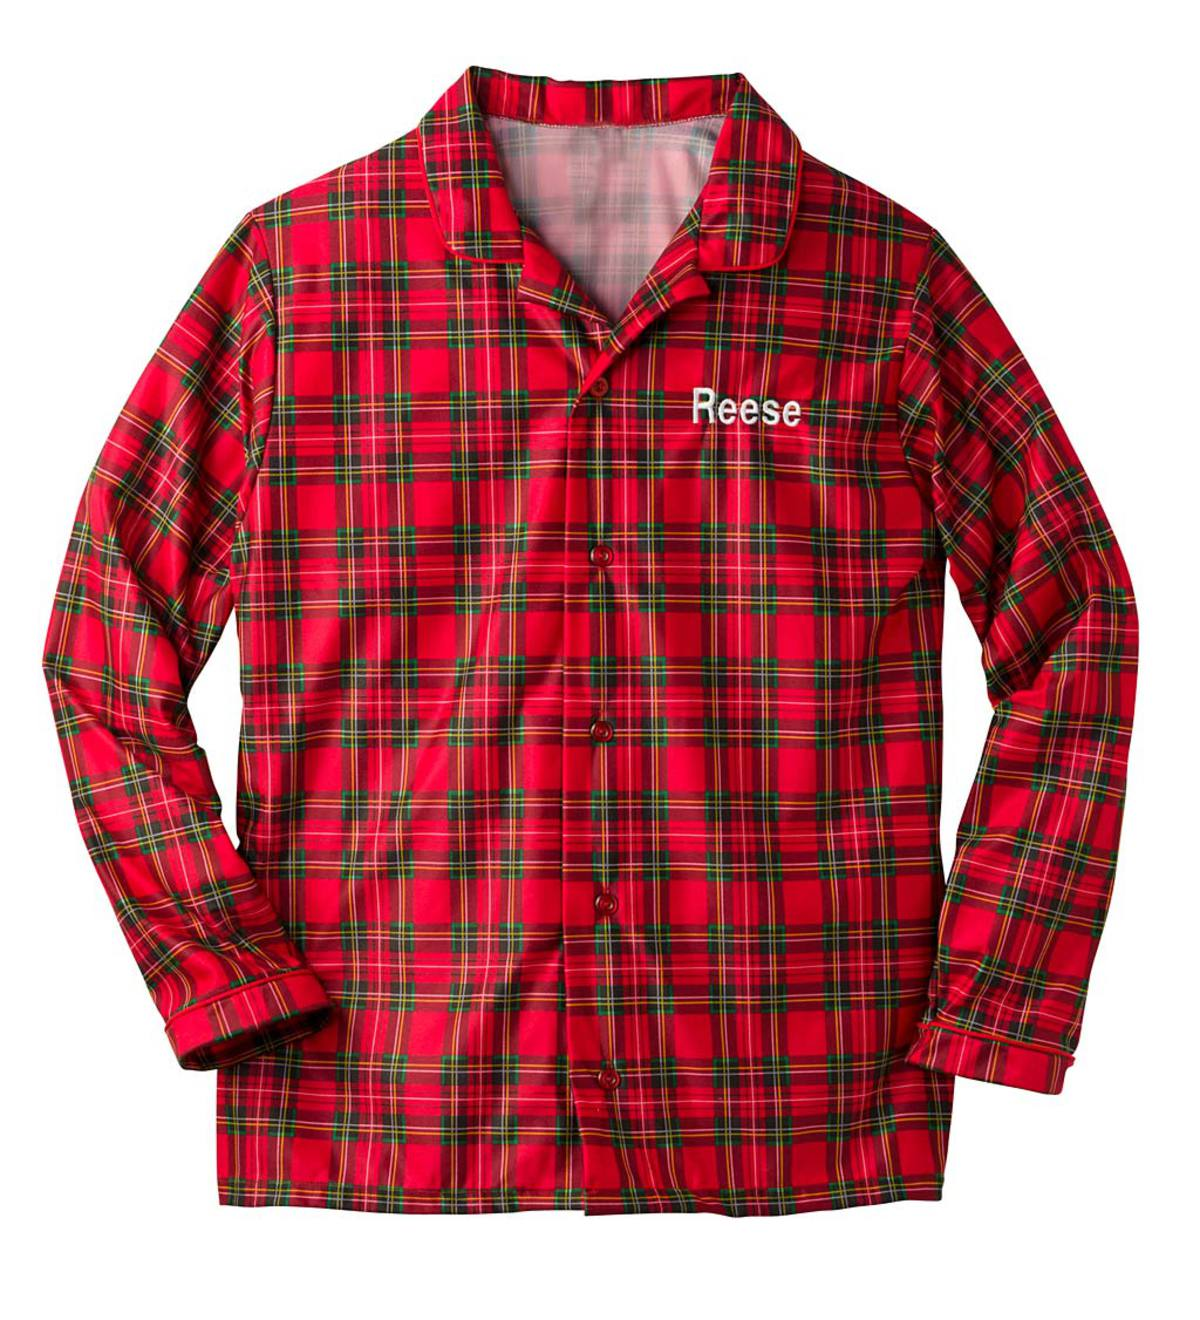 Adult Personalized Plaid Button Top - Red - Large